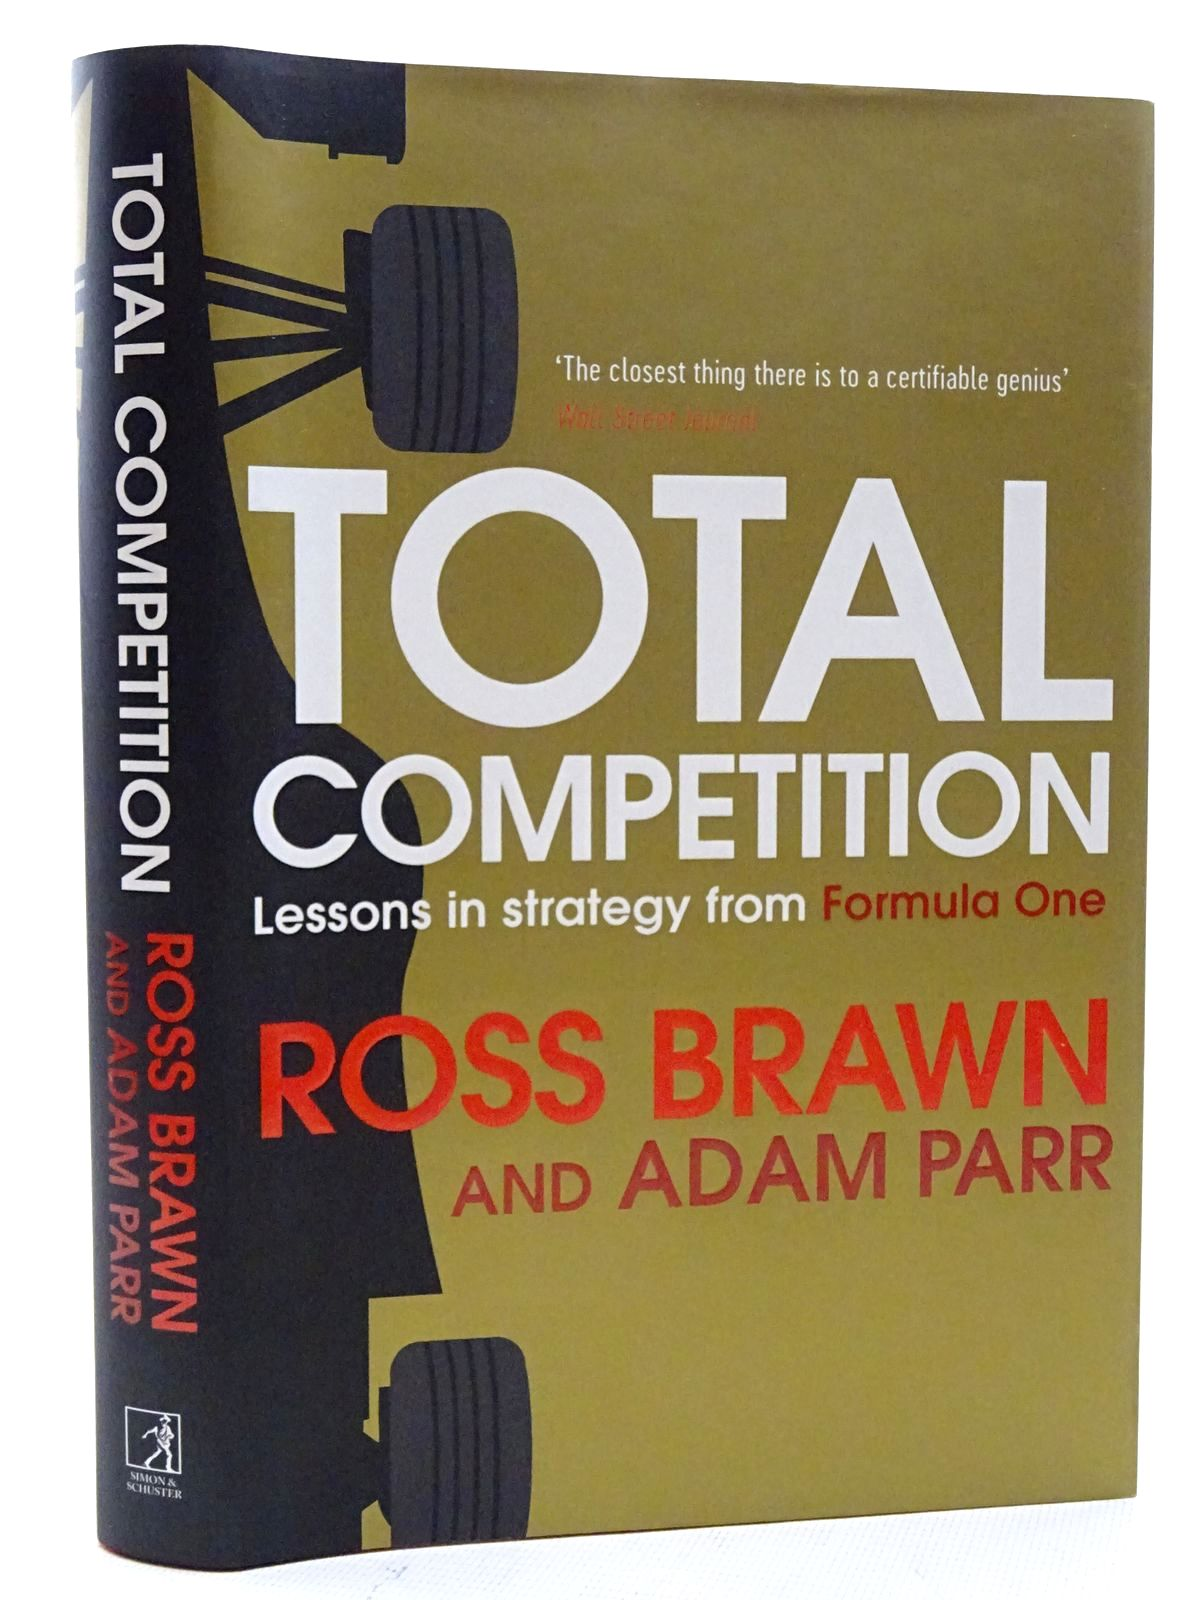 Photo of TOTAL COMPETITION LESSONS IN STRATEGY FROM FORMULA ONE written by Brawn, Ross<br />Parr, Adam published by Simon & Schuster (STOCK CODE: 1610574)  for sale by Stella & Rose's Books